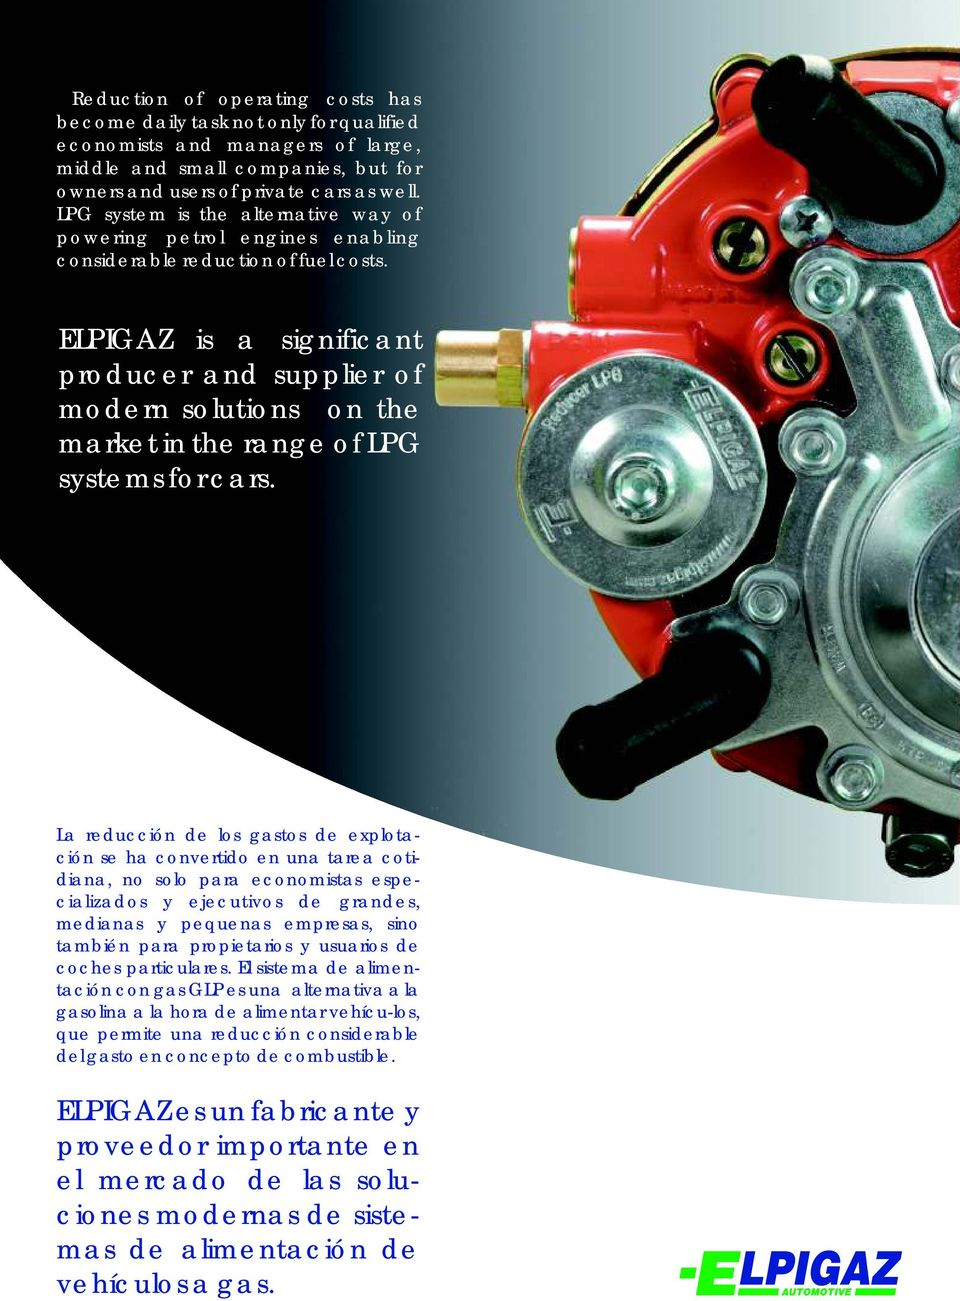 ELPIGAZ is a significant producer and supplier of modern solutions on the market in the range of LPG systems for cars.